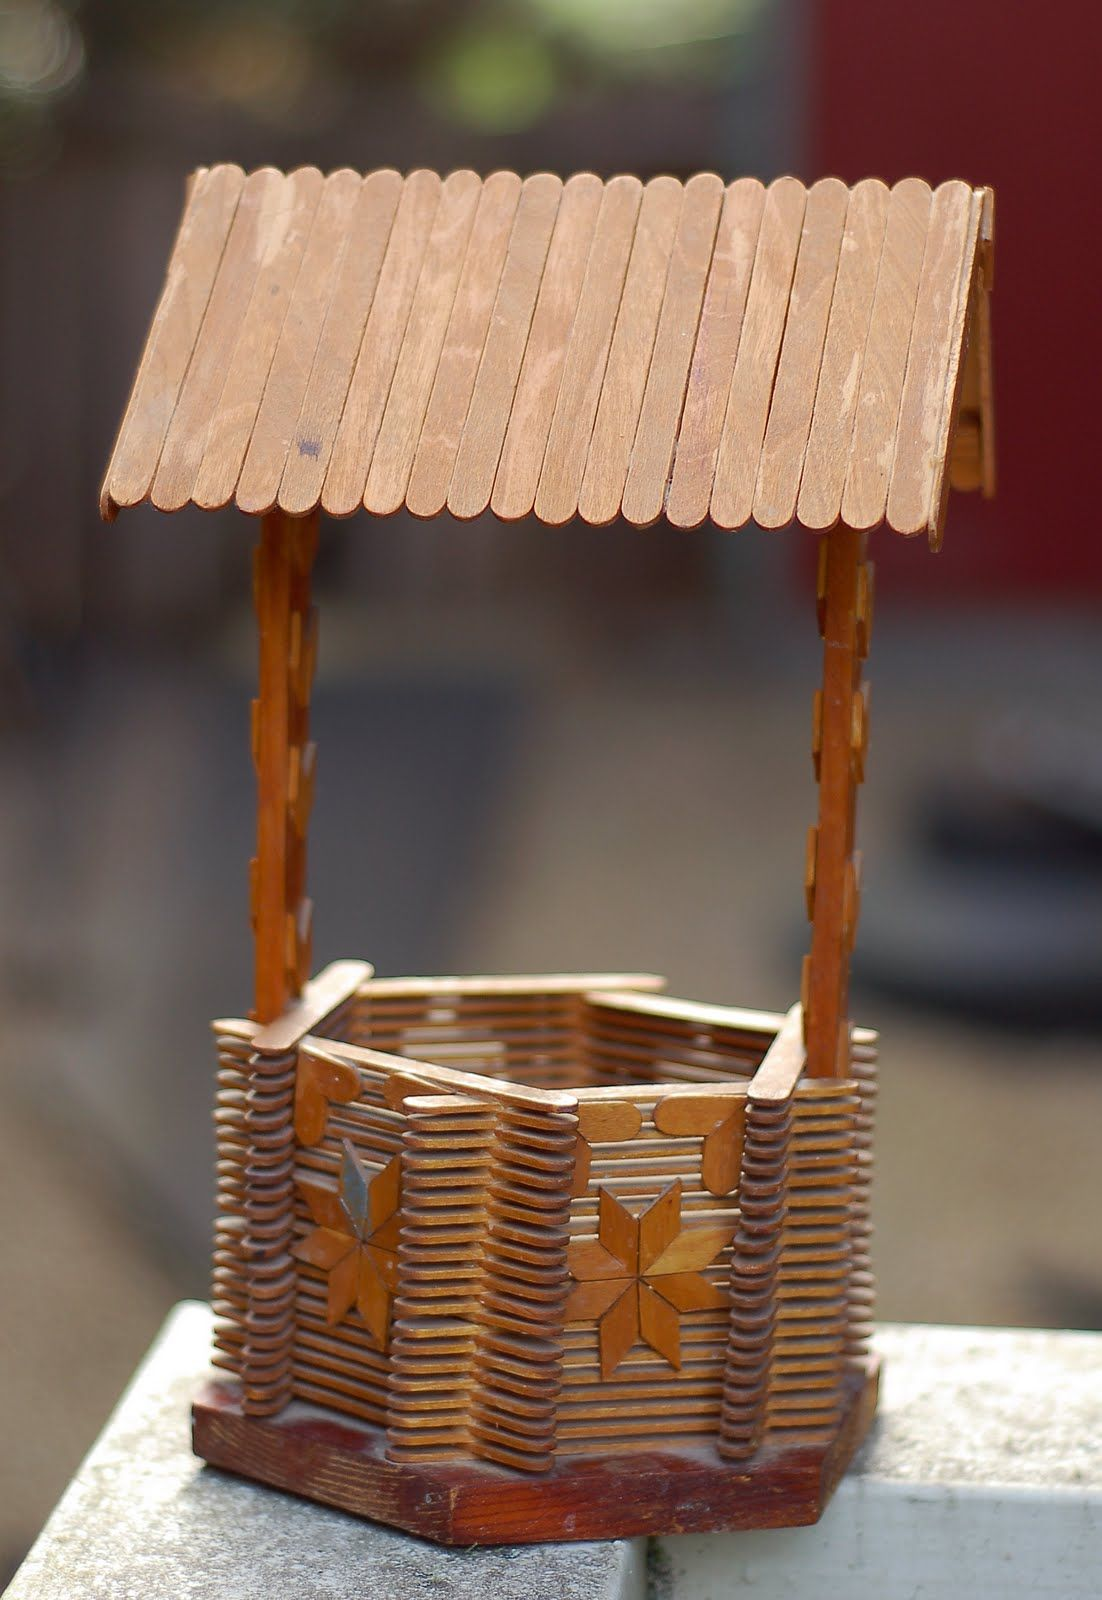 70+ homemade popsicle stick crafts | bird houses, bird and stick